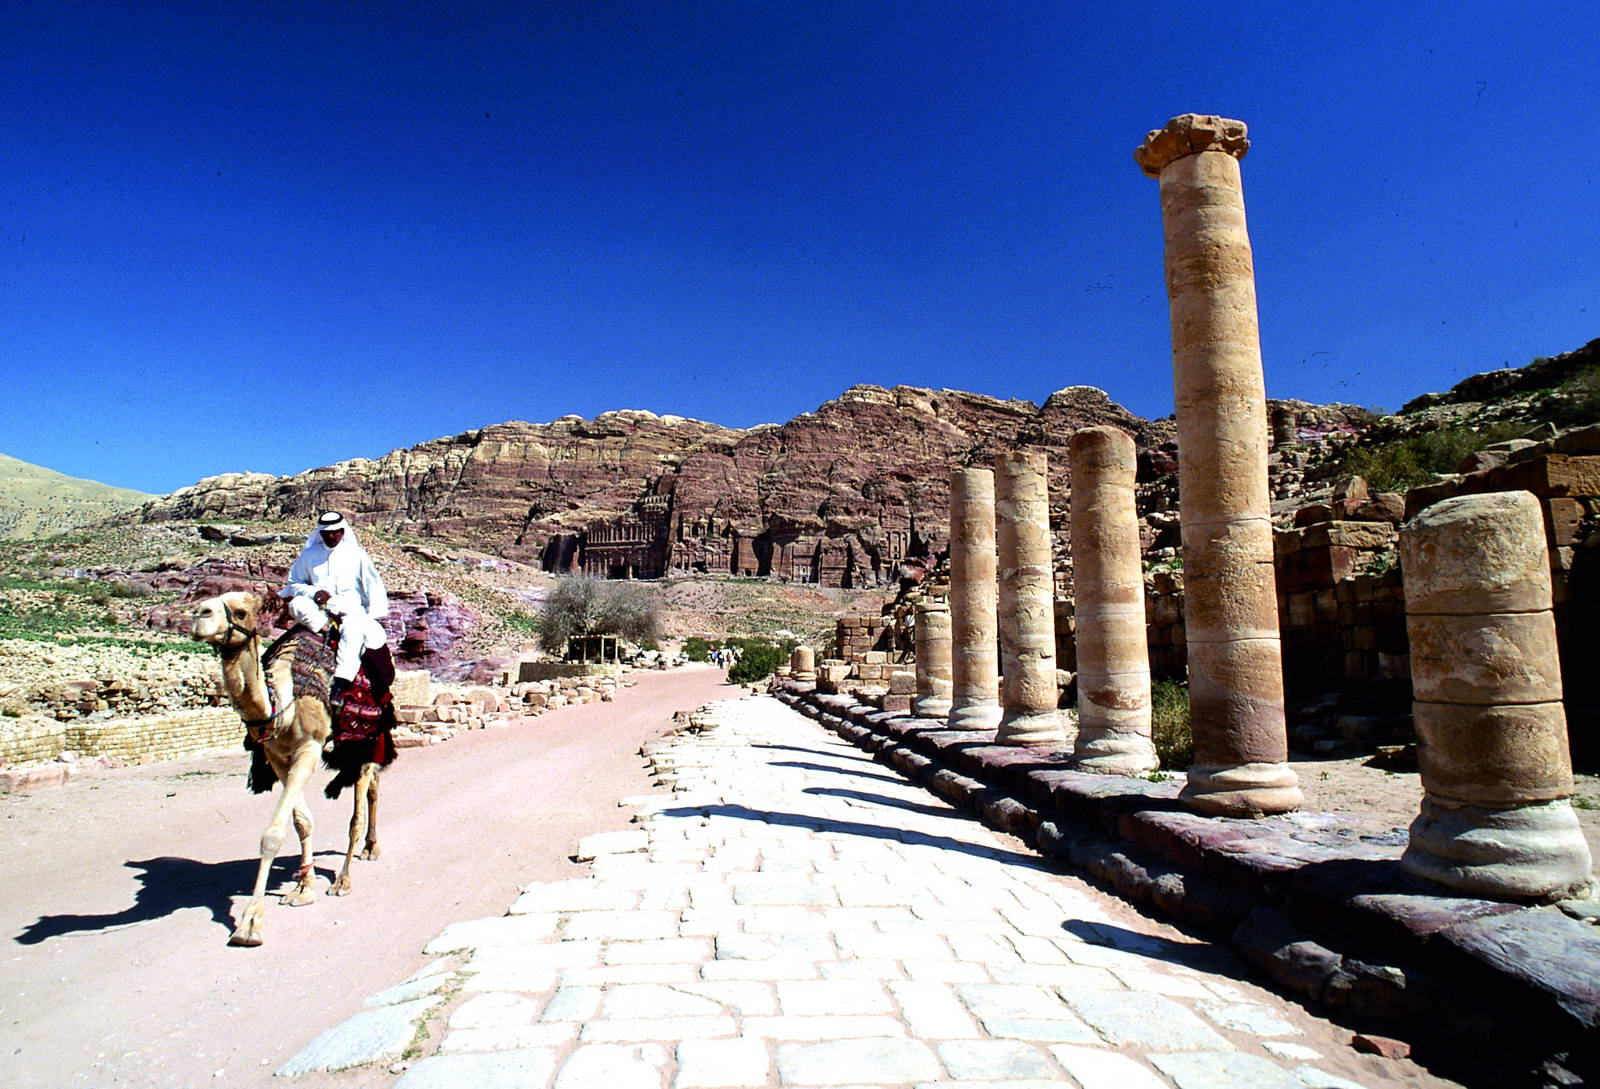 Lecture Offers Peek into Nabataean Presence on Dead Sea Shores